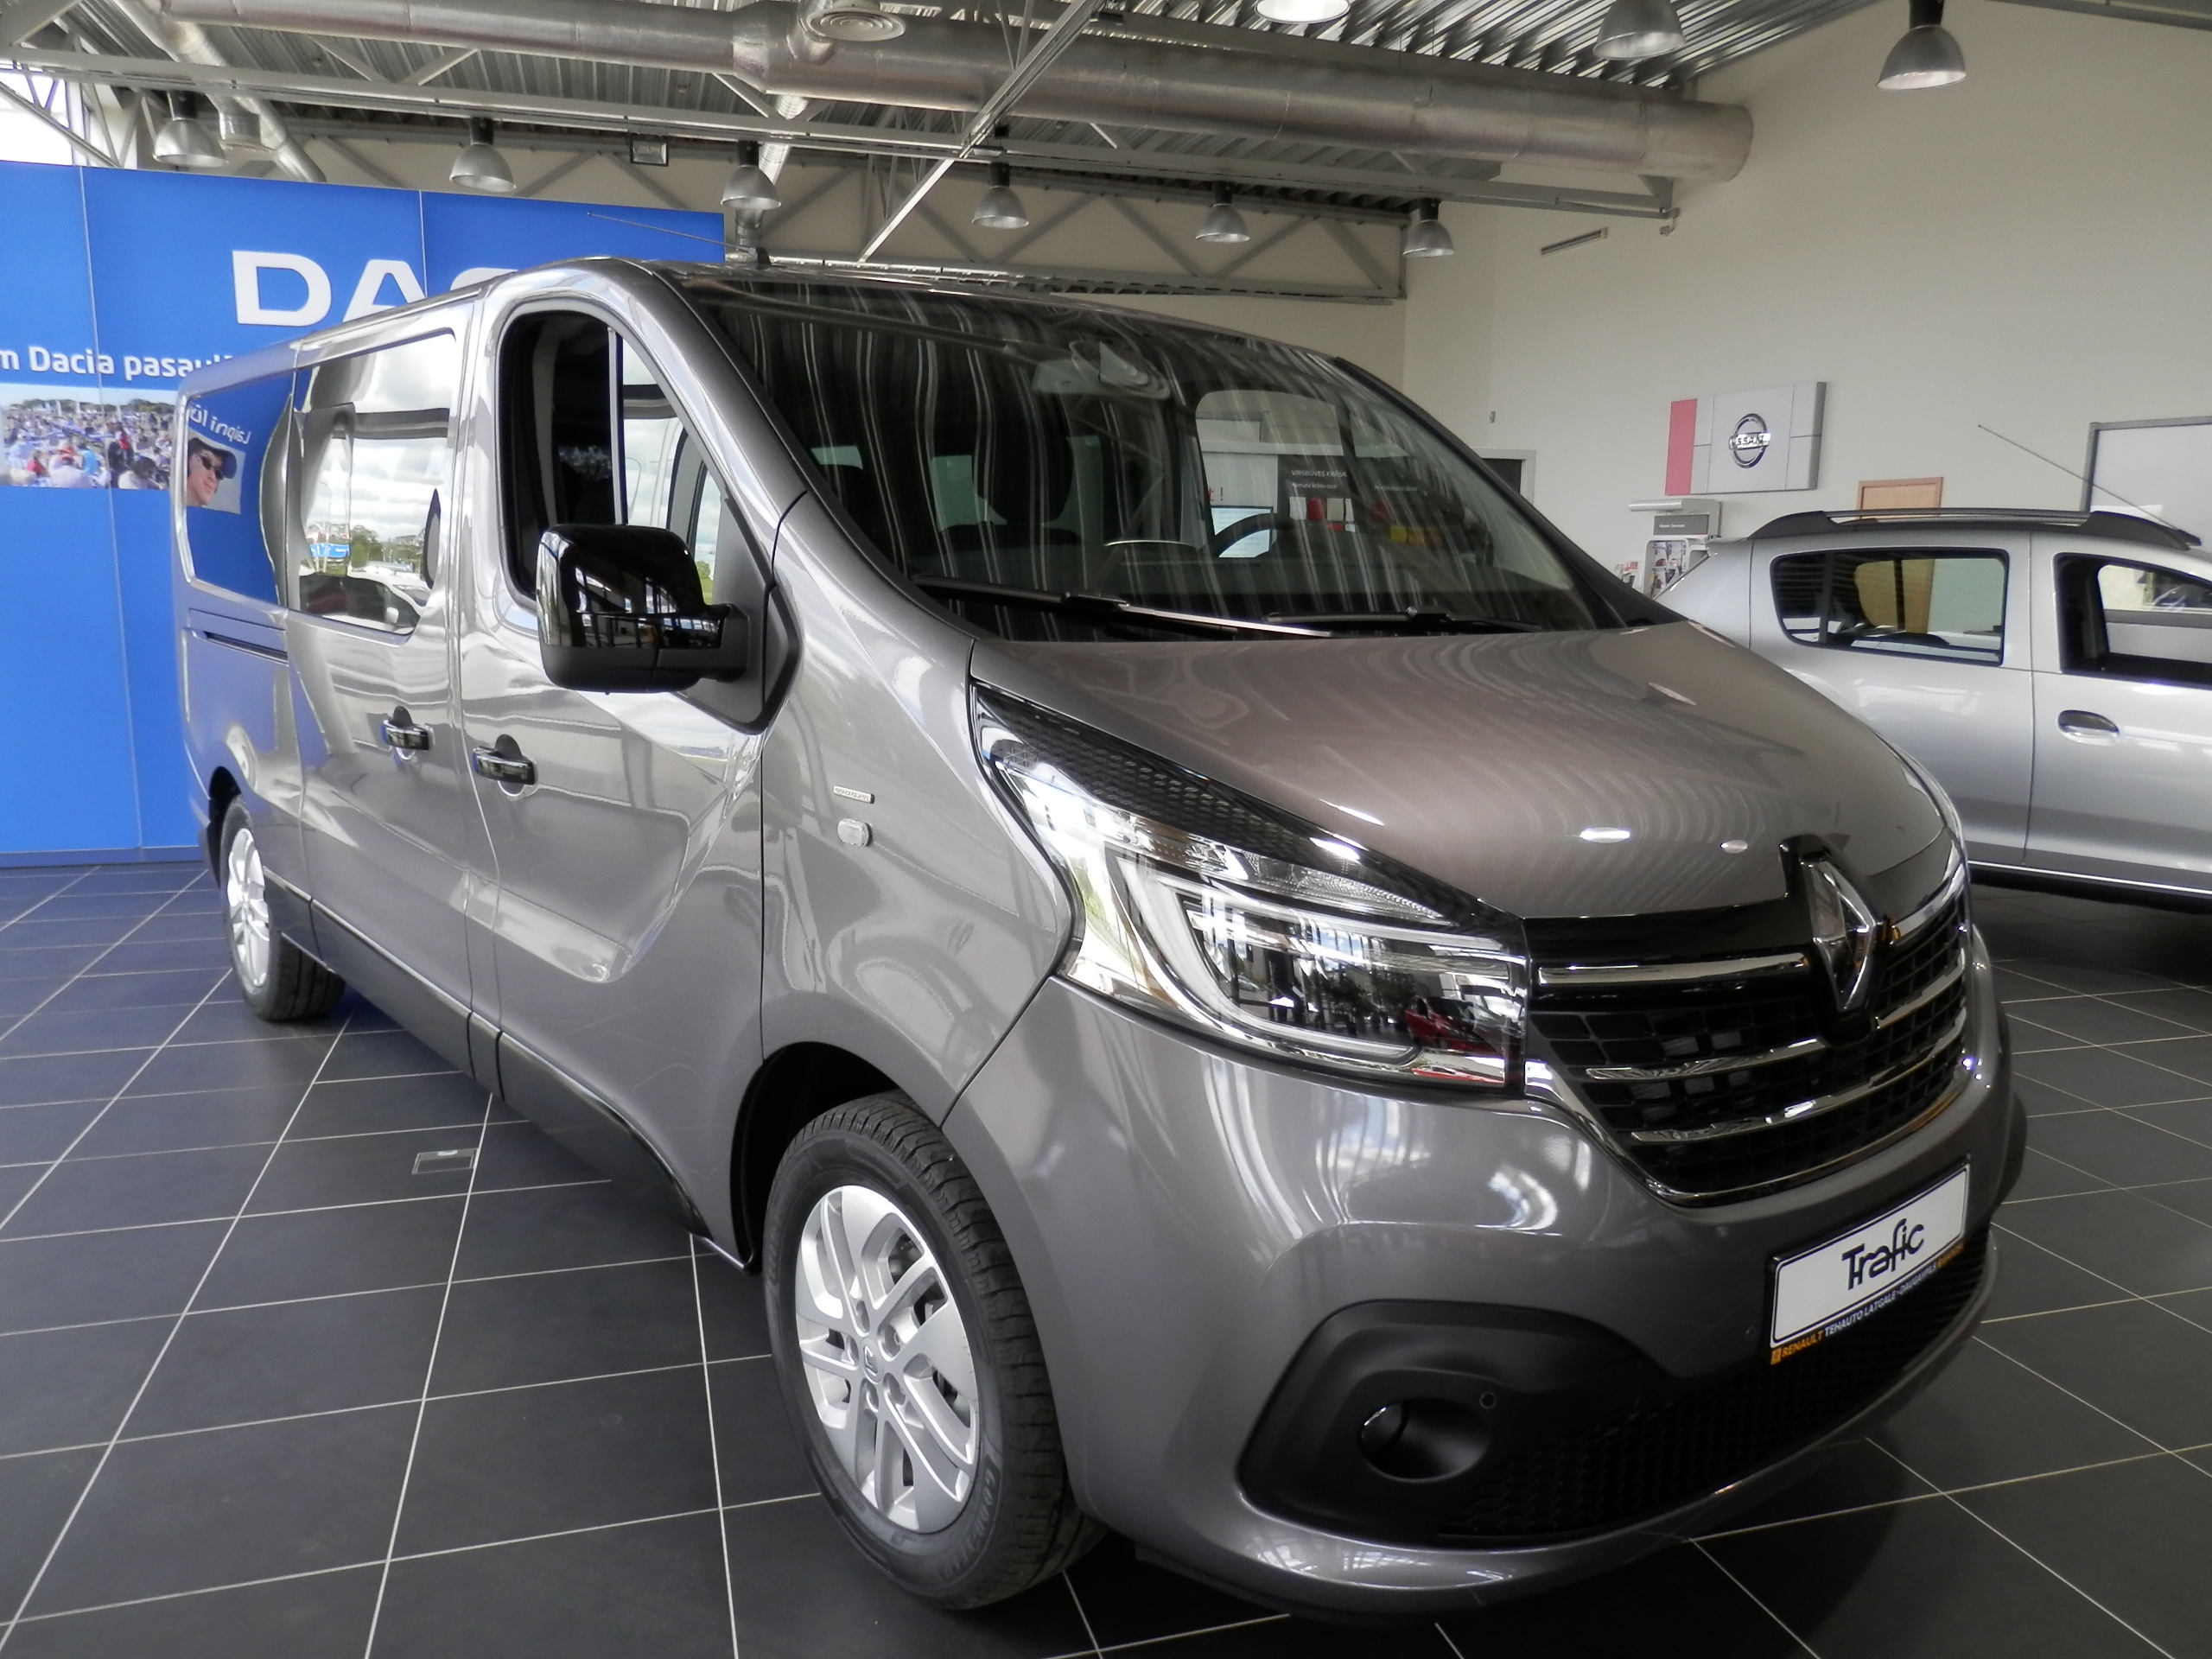 Renault Trafic SpaceClass 2.0dCi 145 EDC 6A/T 2WD